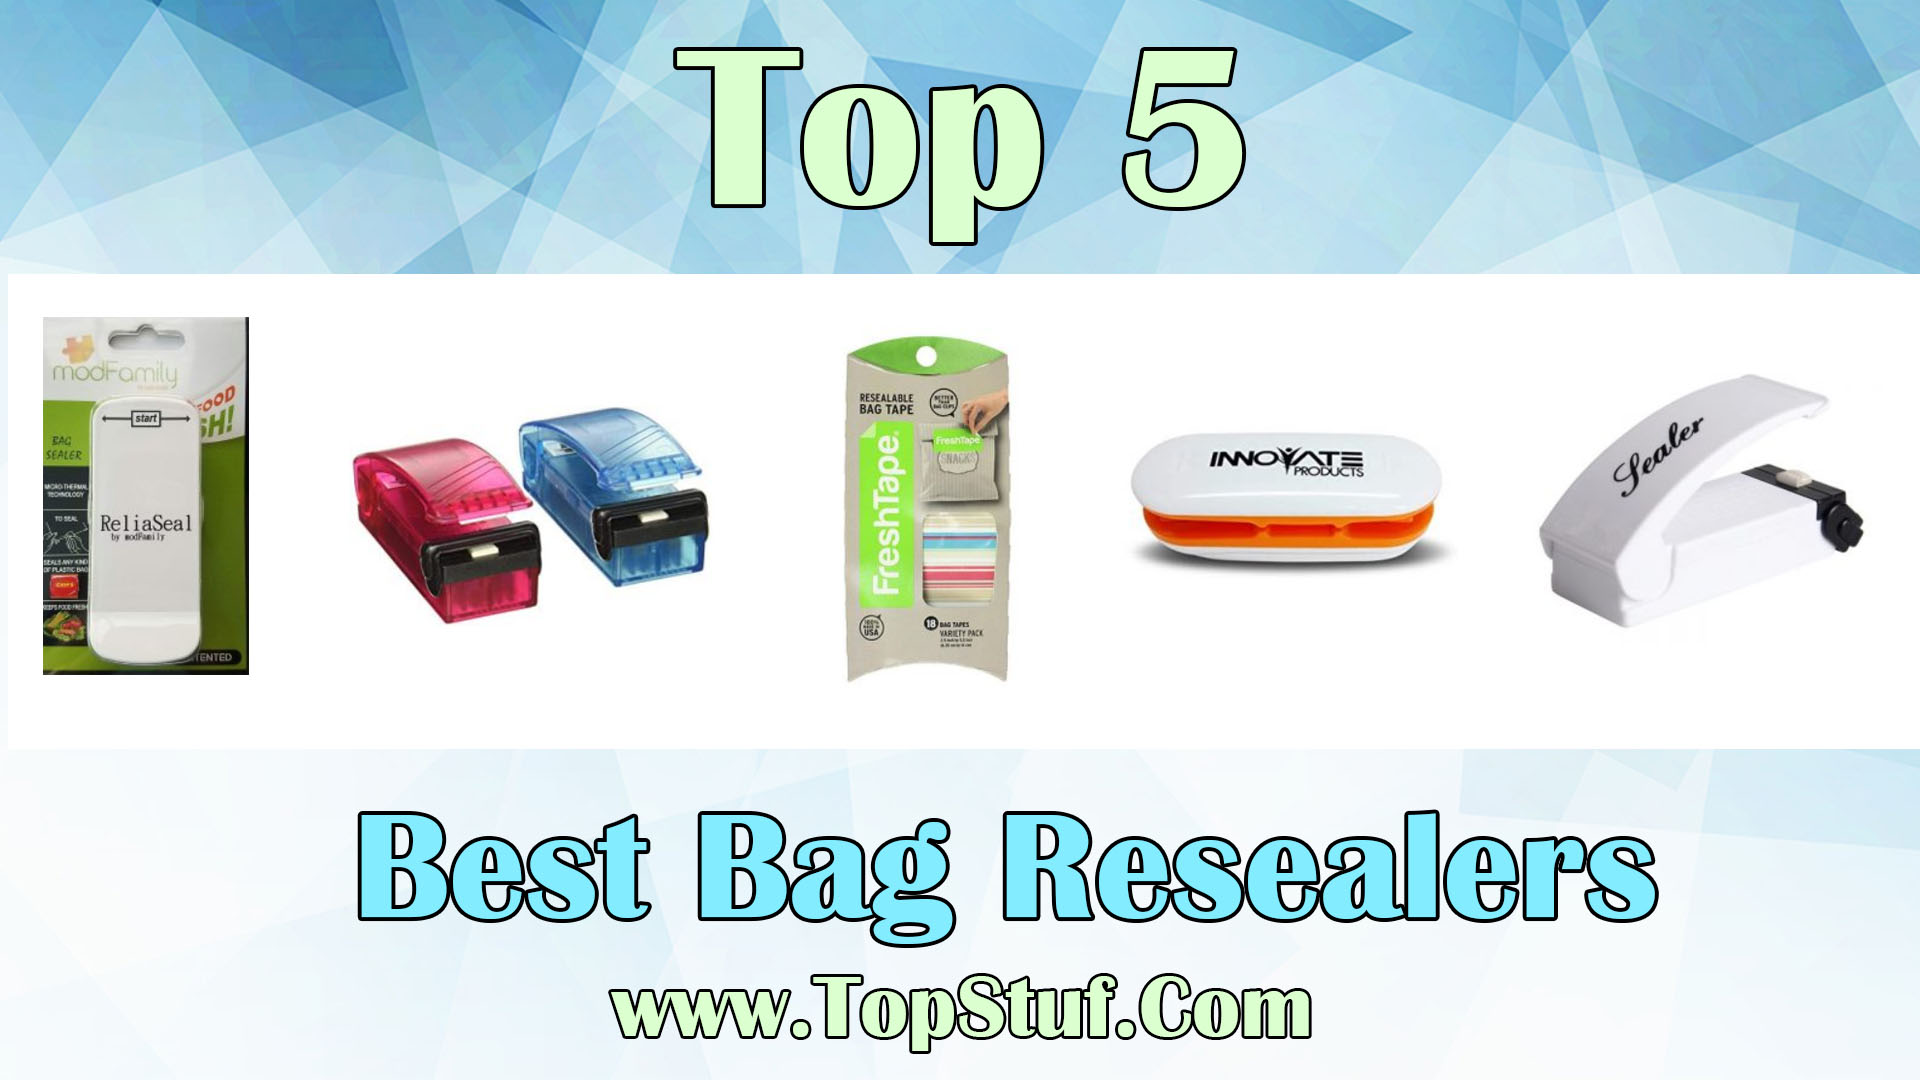 Best Bag Resealers